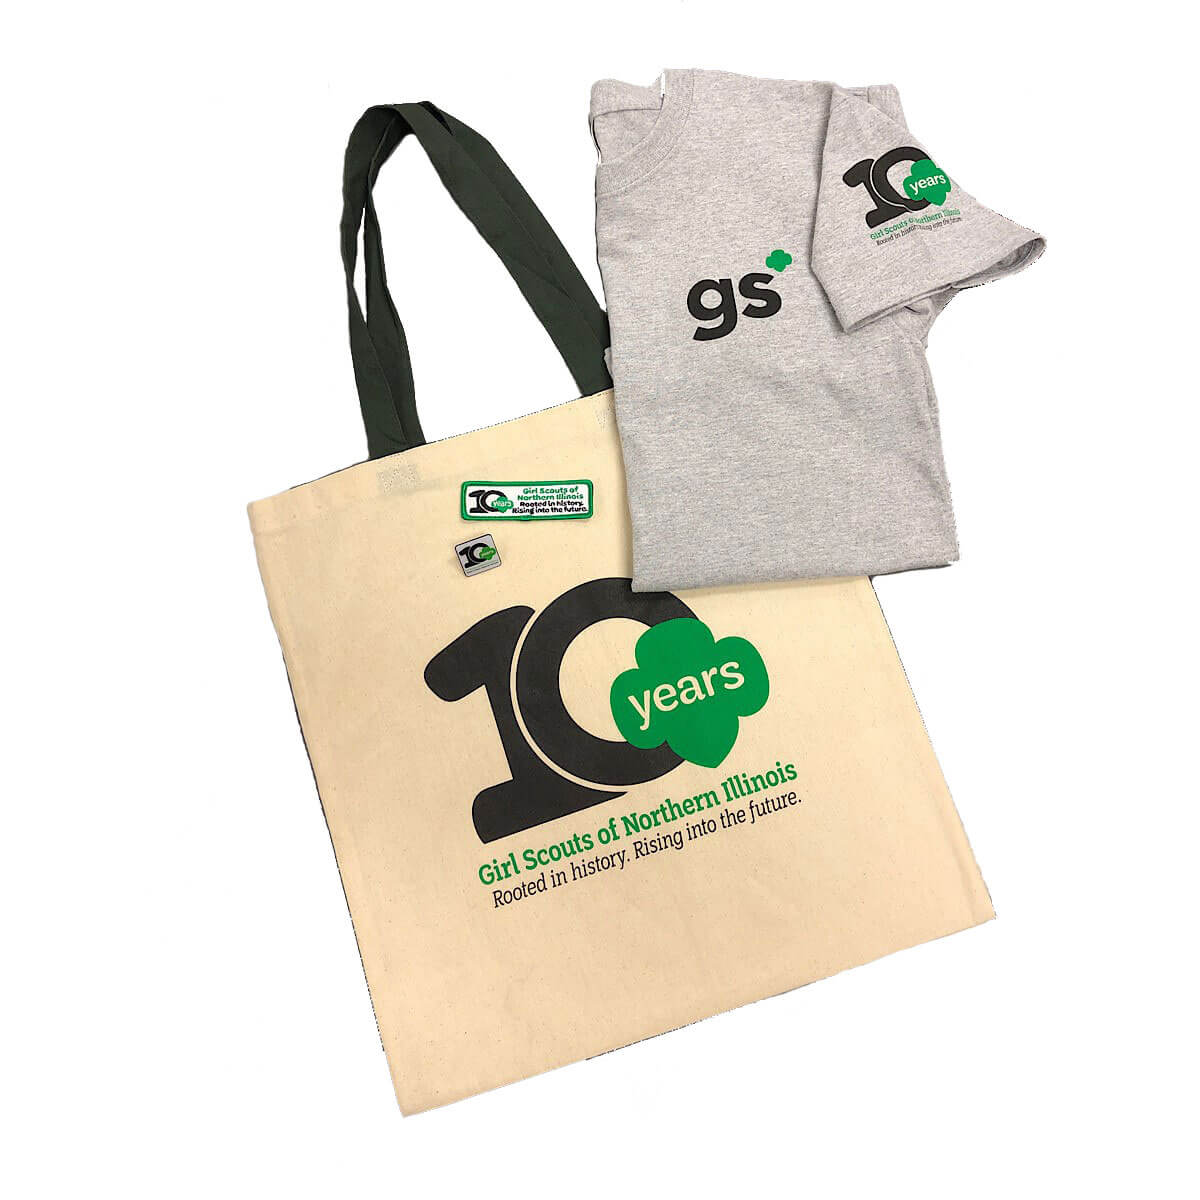 GSNI 10th Anniversary T-Shirt